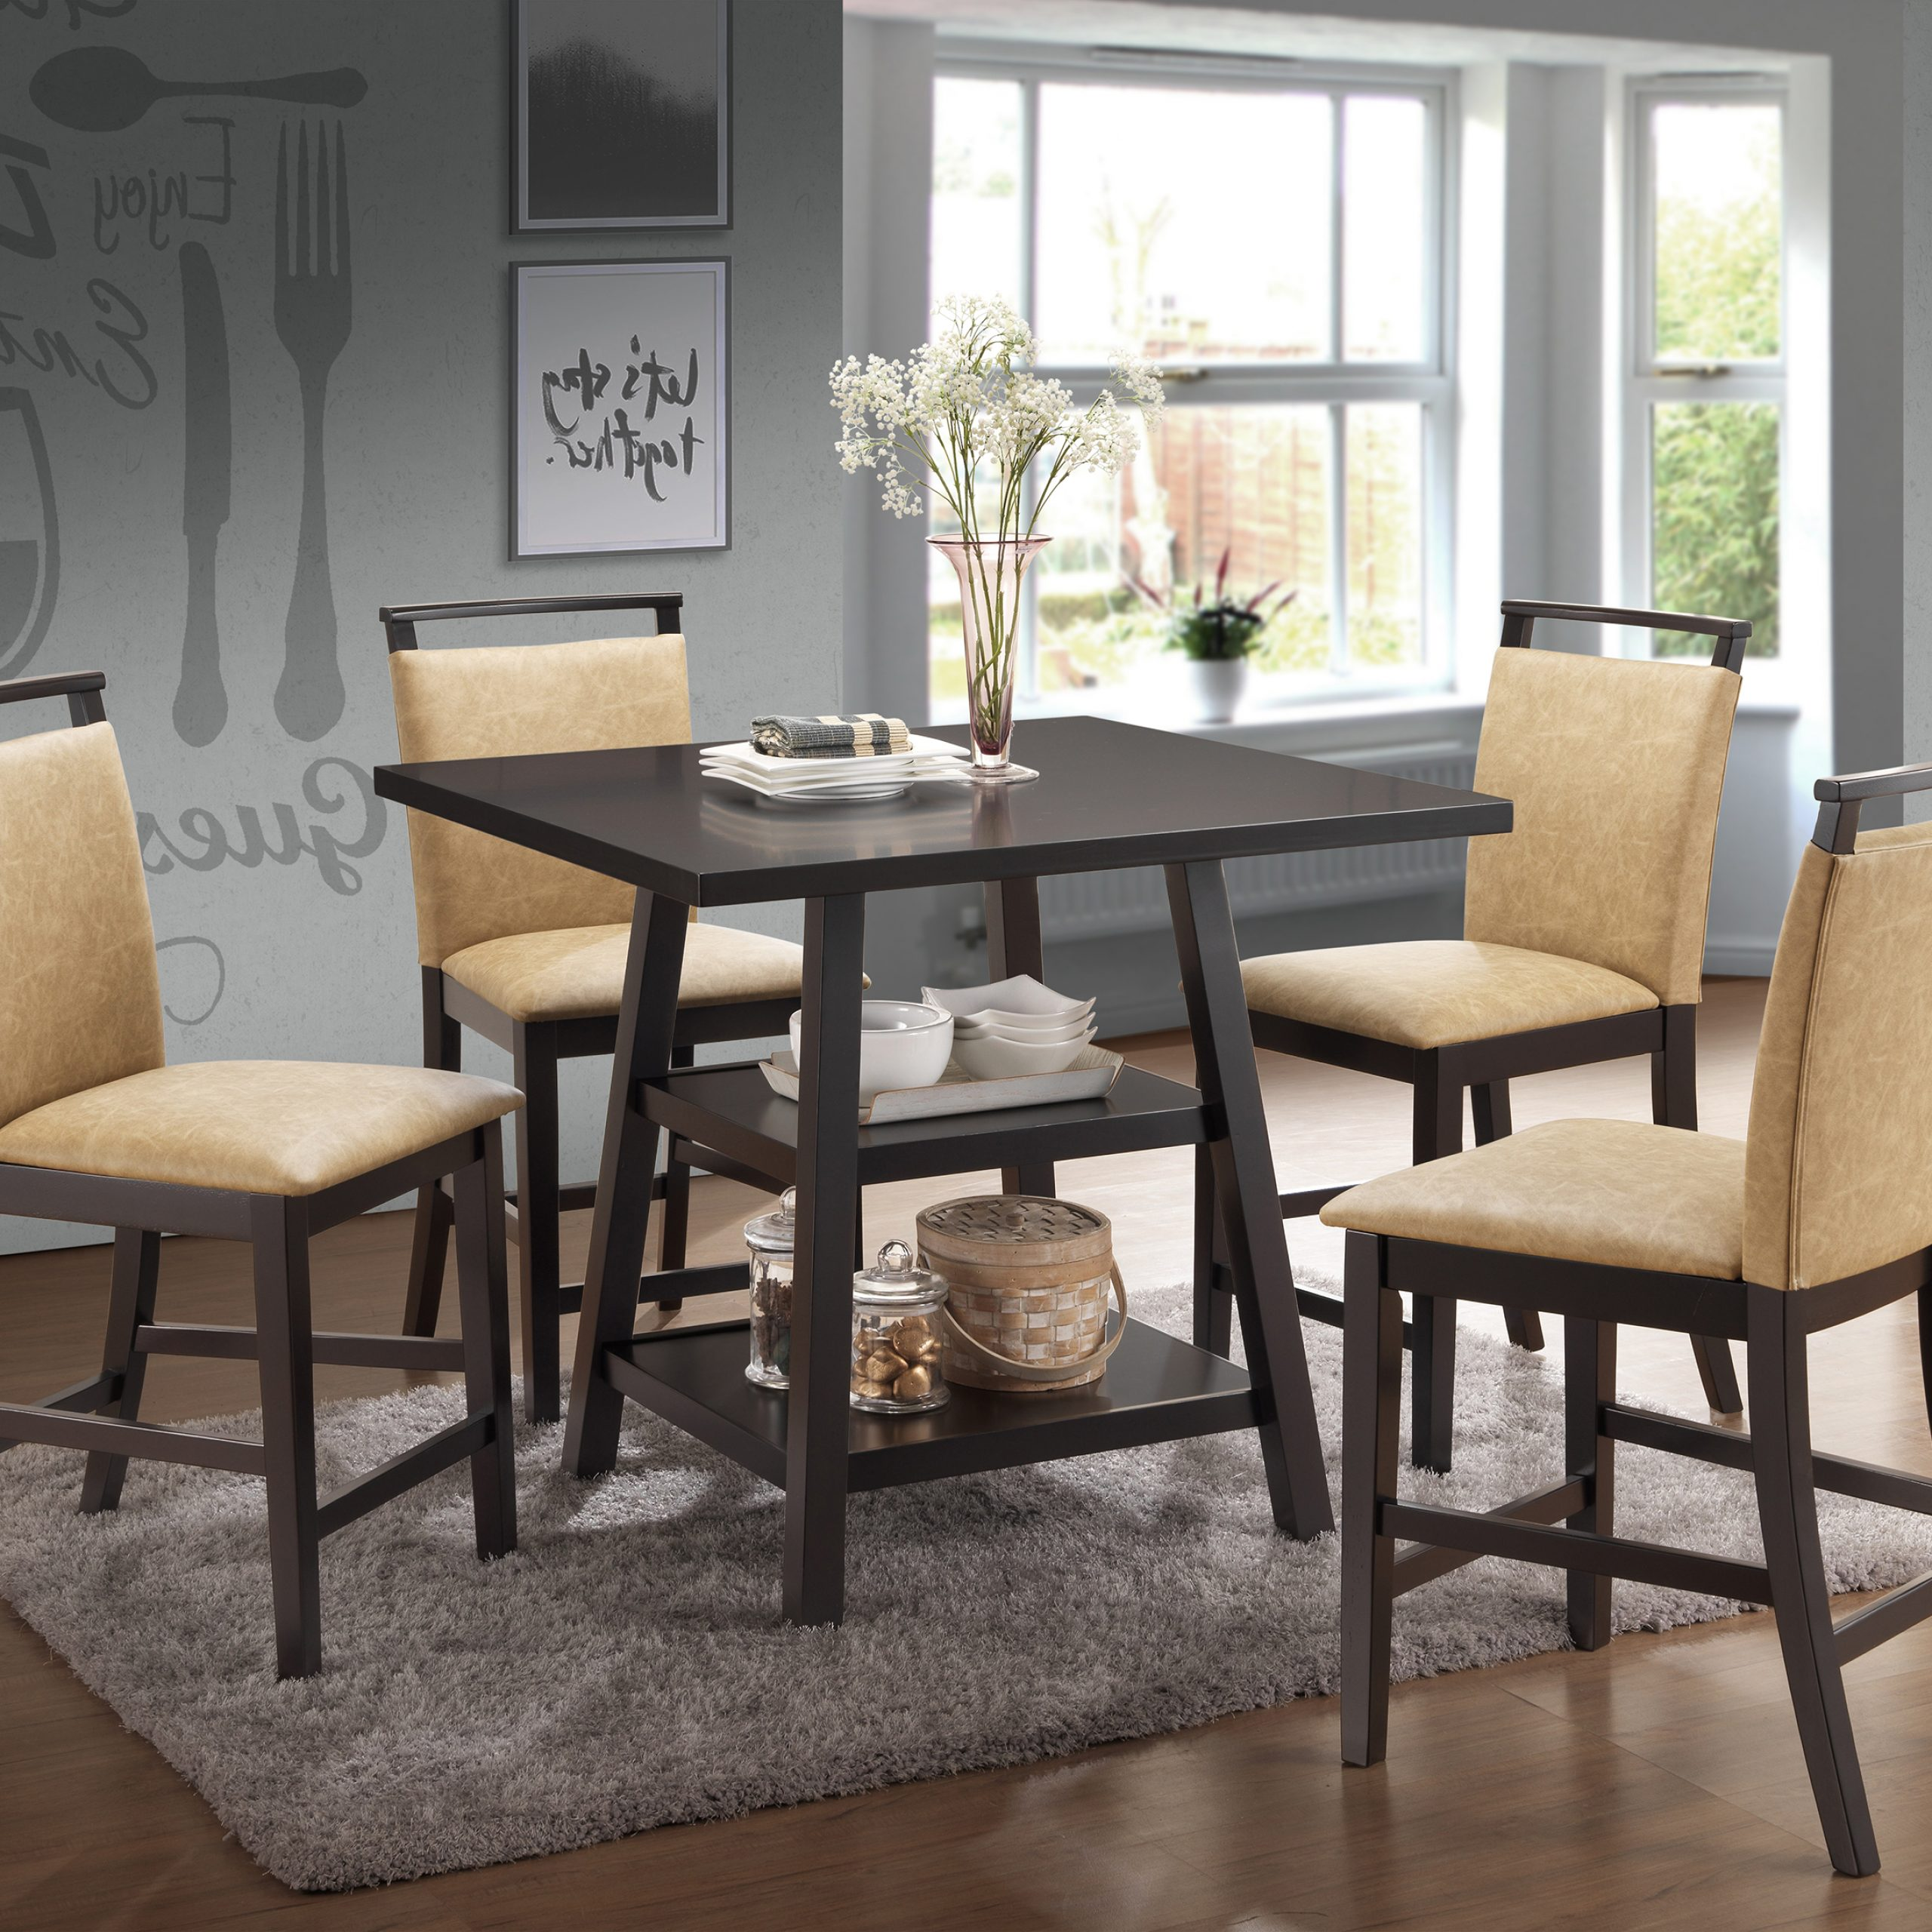 Cappuccino Finish Wood Classic Casual Dining Tables For 2018 Details About Kings Brand Aloe Cappuccino Counter Height Table & 4 Coffee  Upholstered Chairs (Gallery 23 of 30)